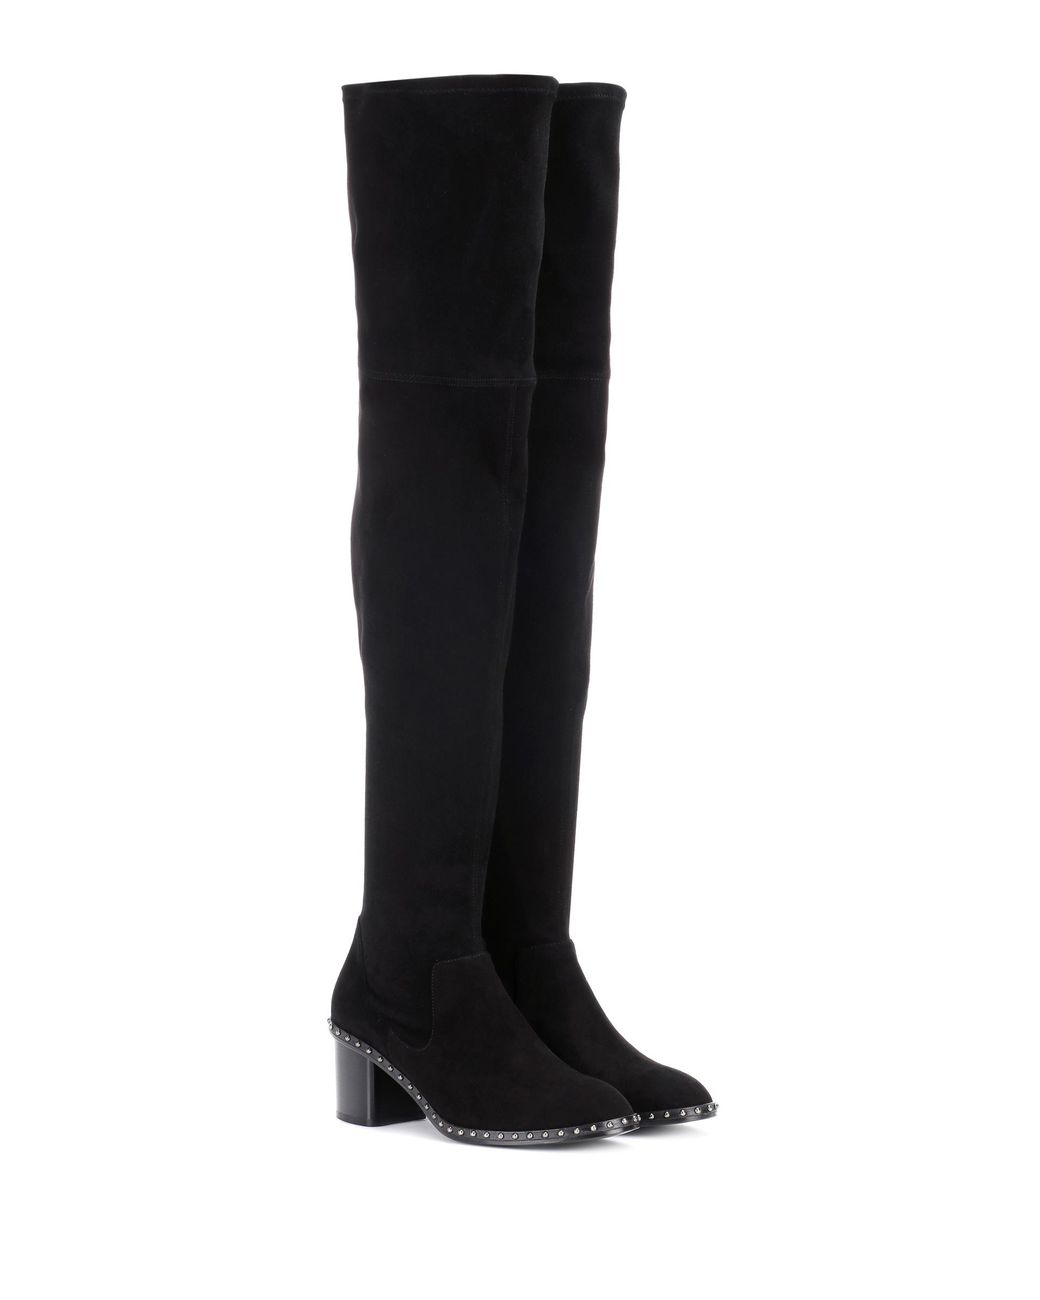 8be10f21f58 Rag   Bone Rina Suede Over-the-knee Boots in Black - Lyst